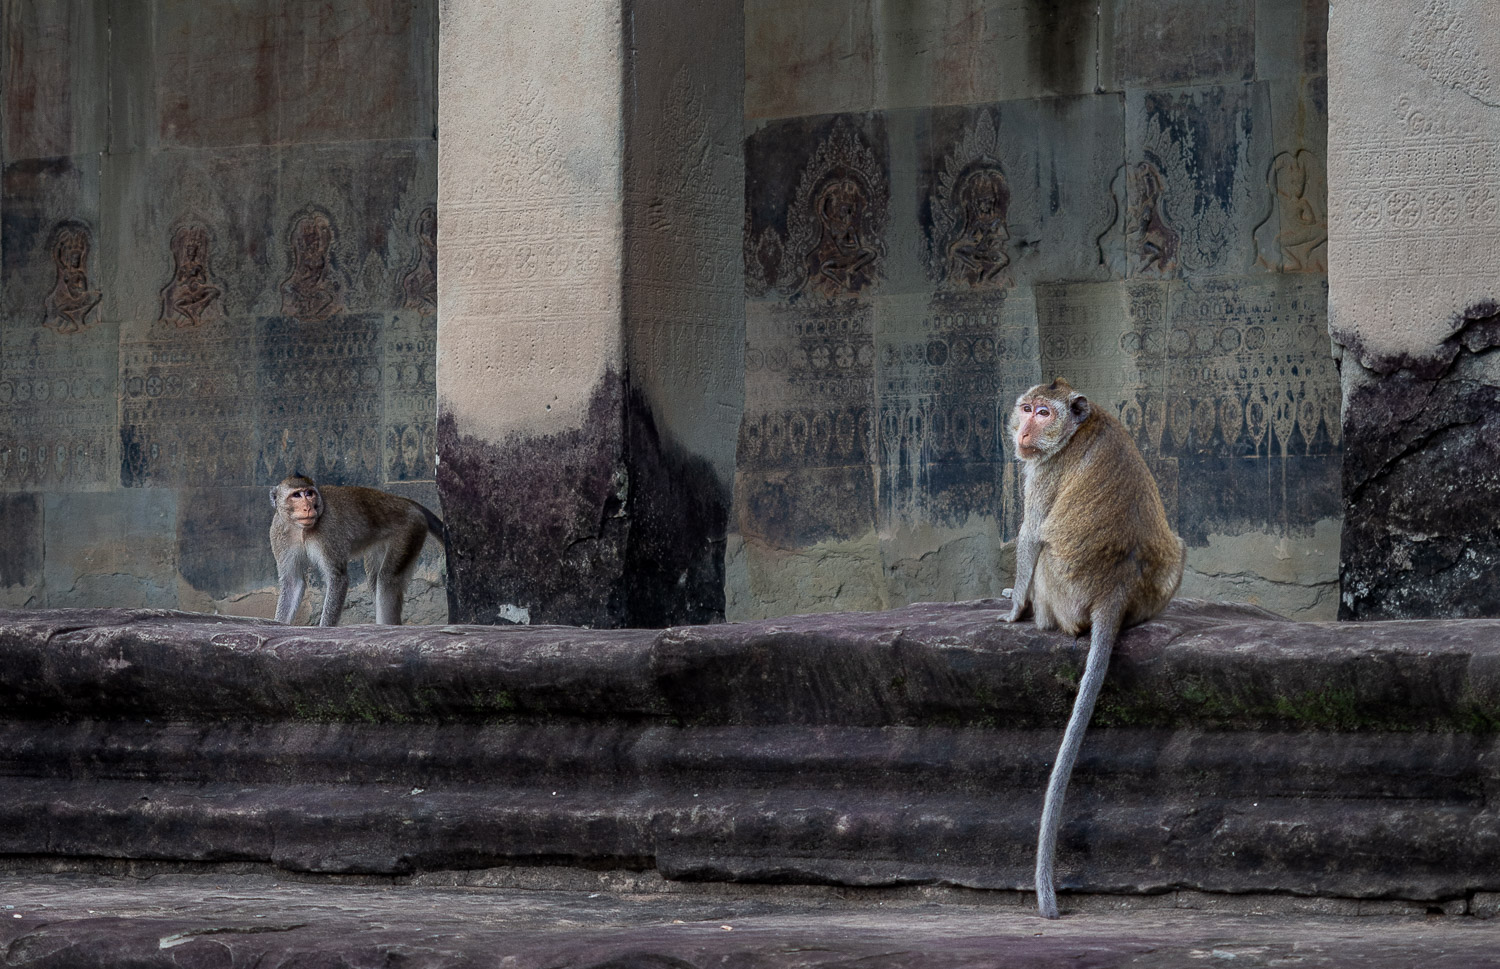 Monky business, Angkor Wat, Angkor, Cambodia.